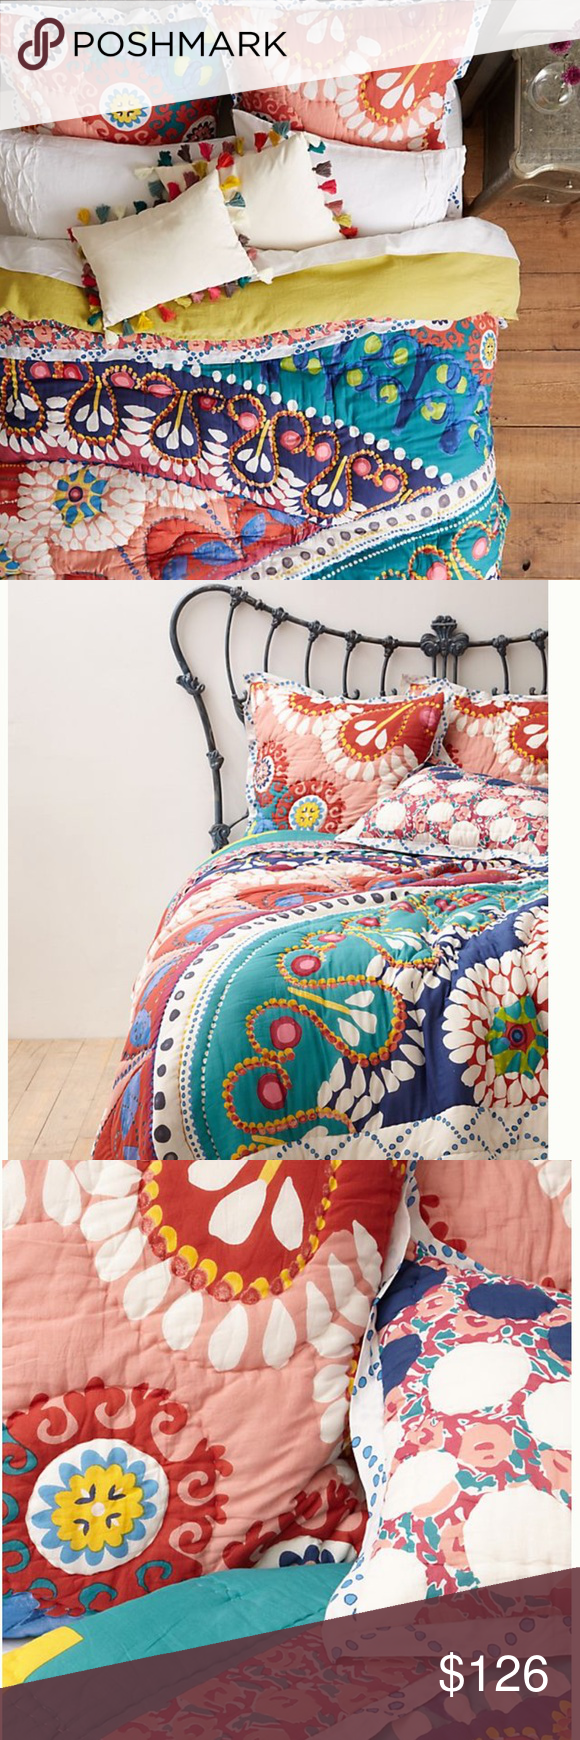 Anthropologie Tahla Twin Quilt And Euro Sham Twin Quilt Anthropologie Bedding Quilt Sizes